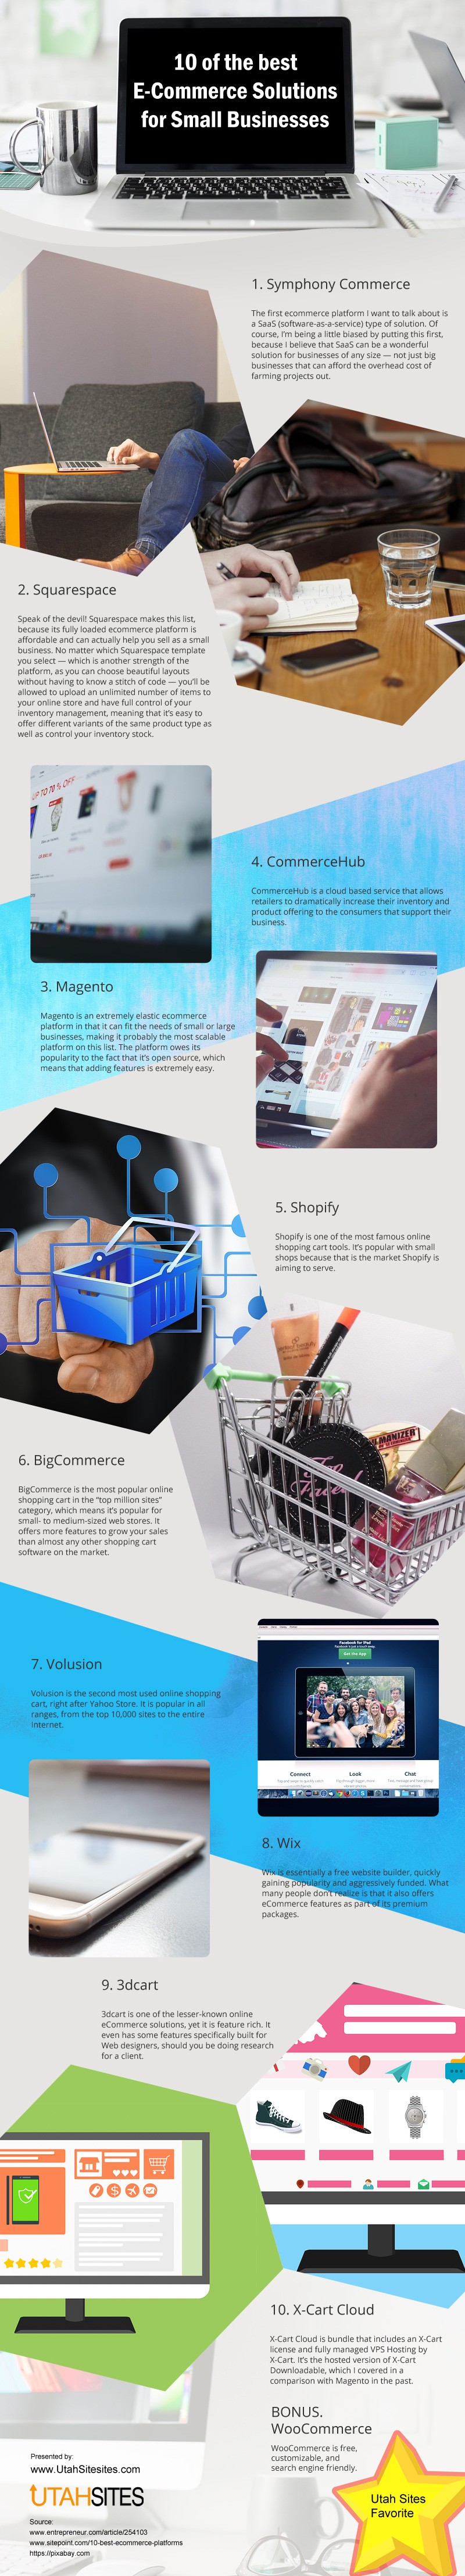 10 of the Best E-Commerce Solutions for Small Businesses [infographic]